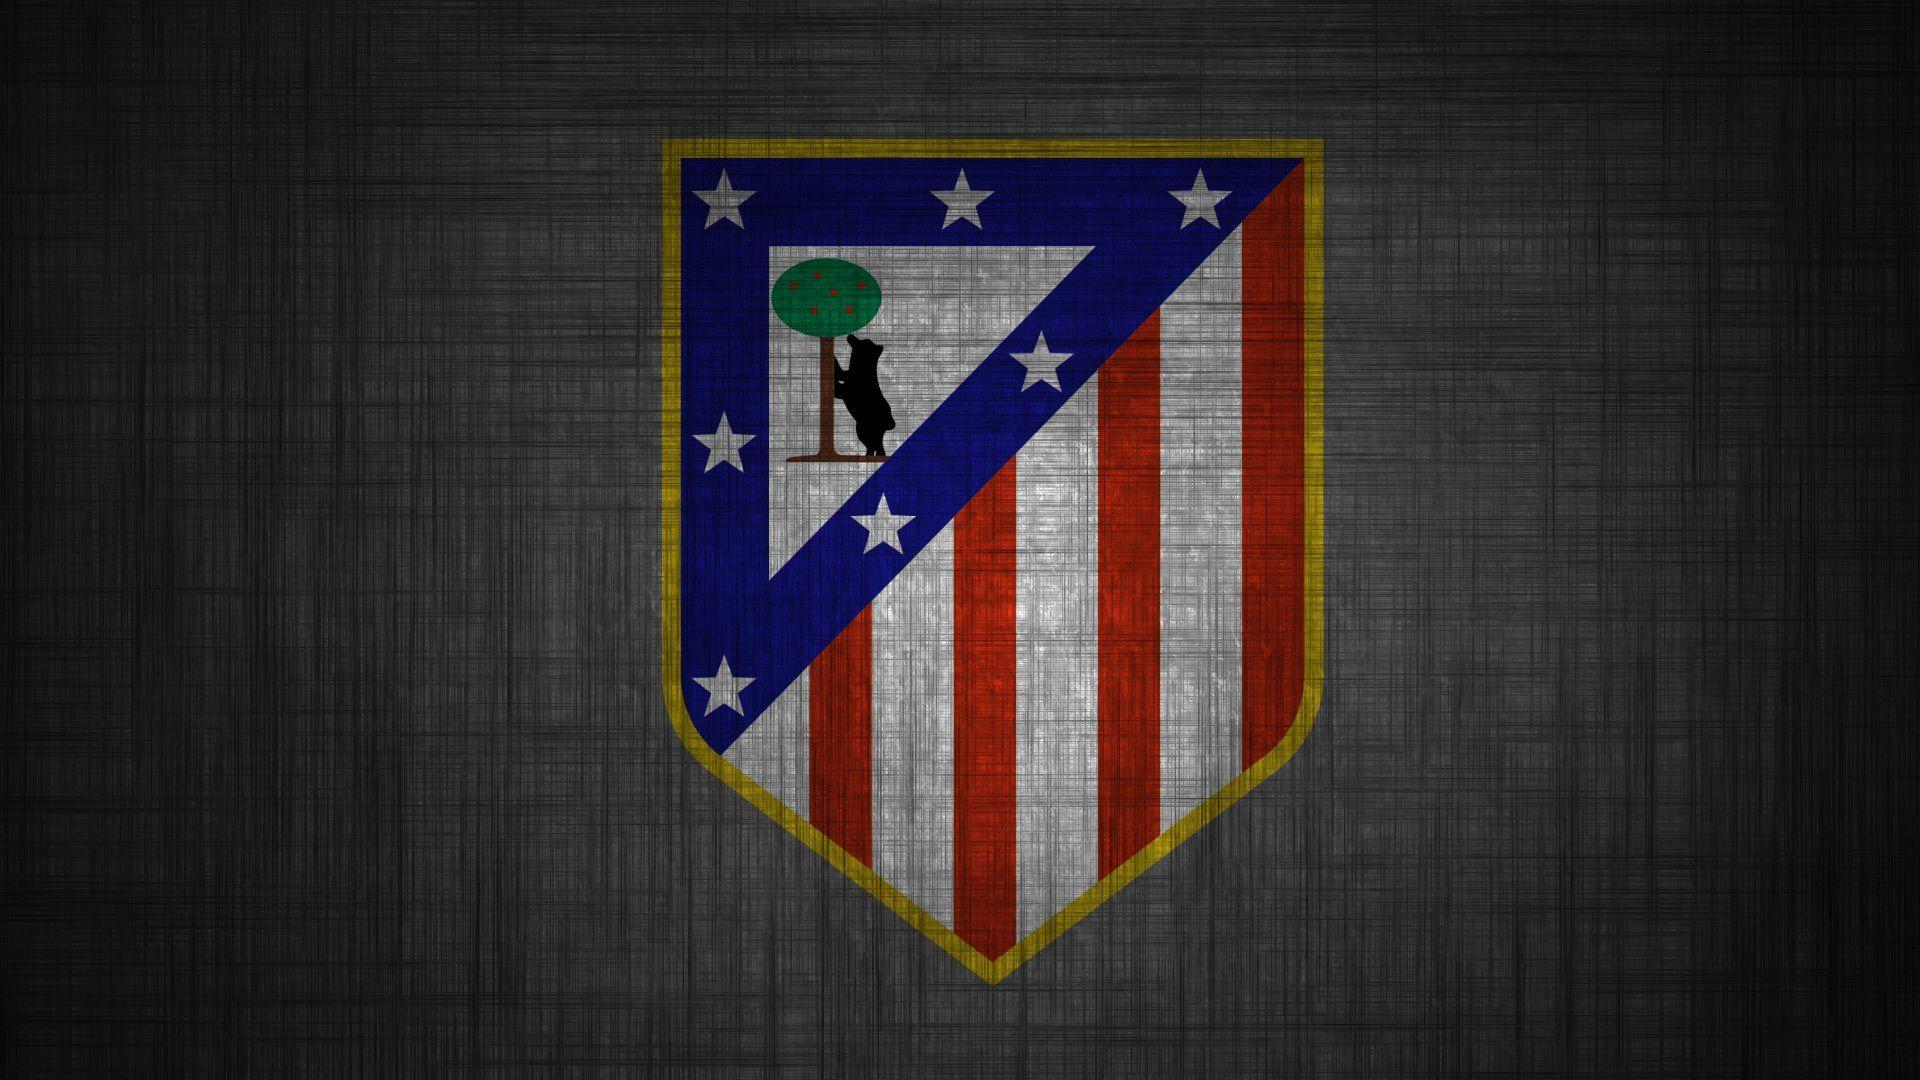 Atltico de madrid wallpapers wallpaper cave atletico madrid wallpaper voltagebd Image collections